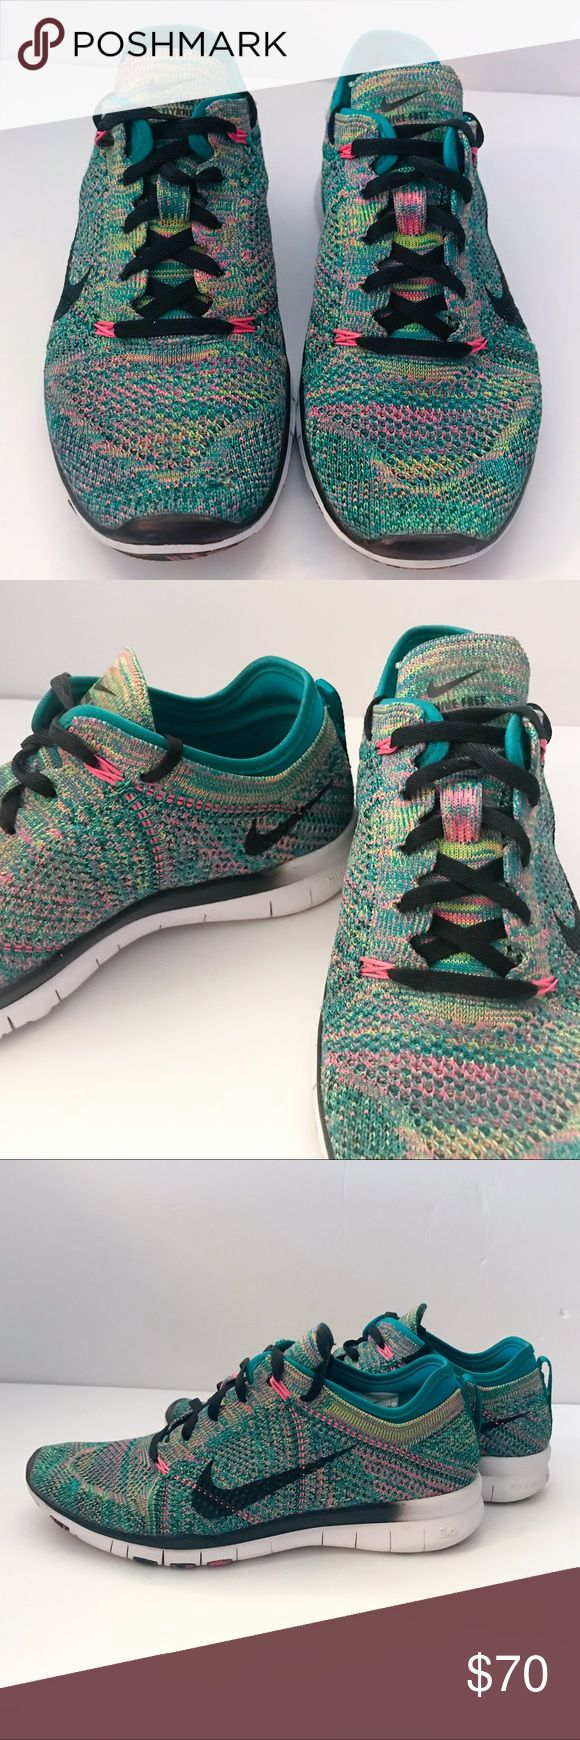 Nike Free 5.0 Flyknit Fruity Pebble Colors Nike Free 5.0 Flyknit Fruity Pebble Colors Size 7.5 unisex, EUR size 38.5 which posh says is 8.5 women's. Great bright white edging for the soles, excellent condition and very unique color and design. These are trendy and will make any outfit pop! Pair with some jeans and a blazer for an updated look or a cute matching pull over for more casual style. Make an offer or bundle for discount! Nike Shoes Sneakers